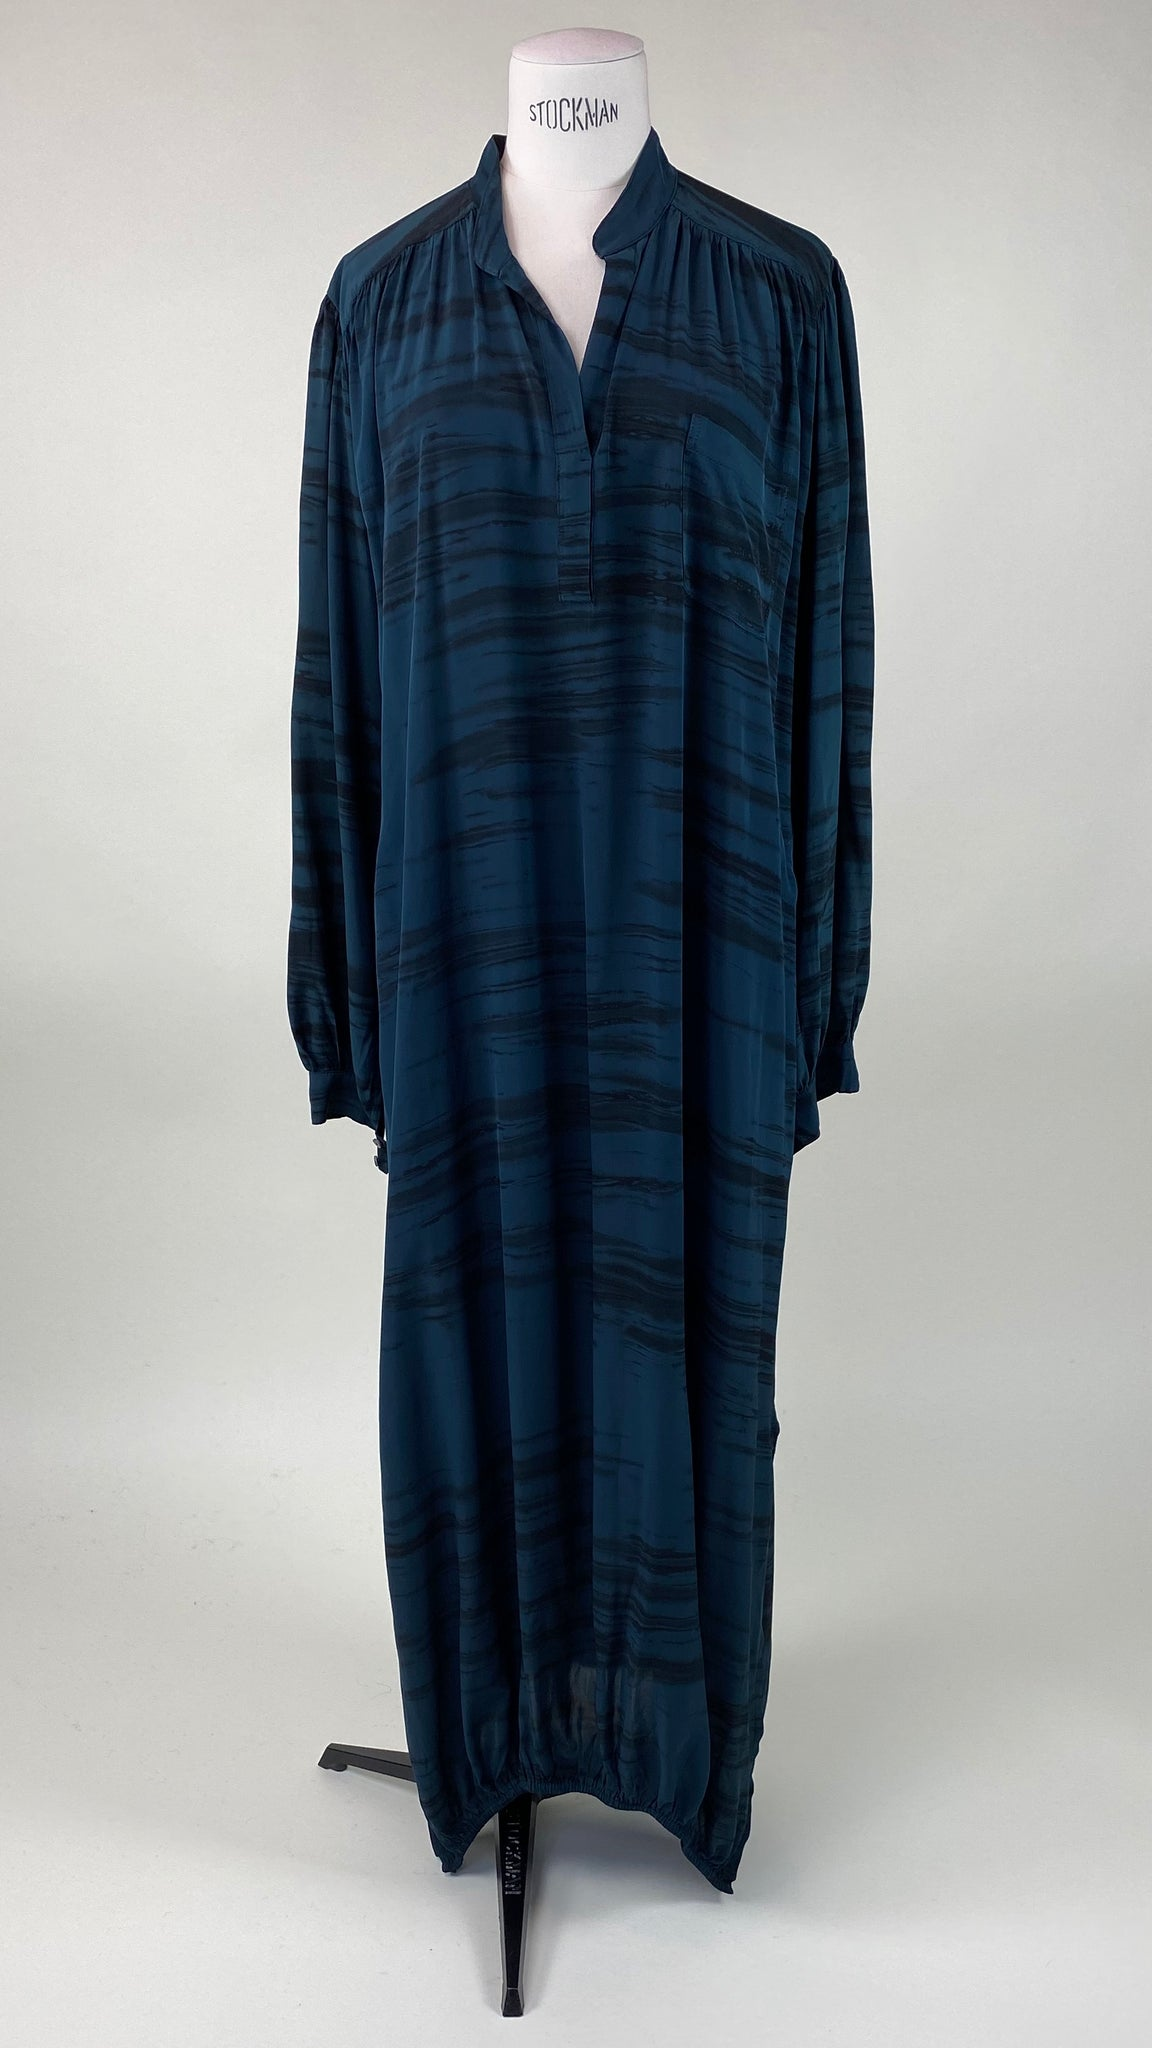 Octavia Wild Stripe Placket Blue/Black Dress